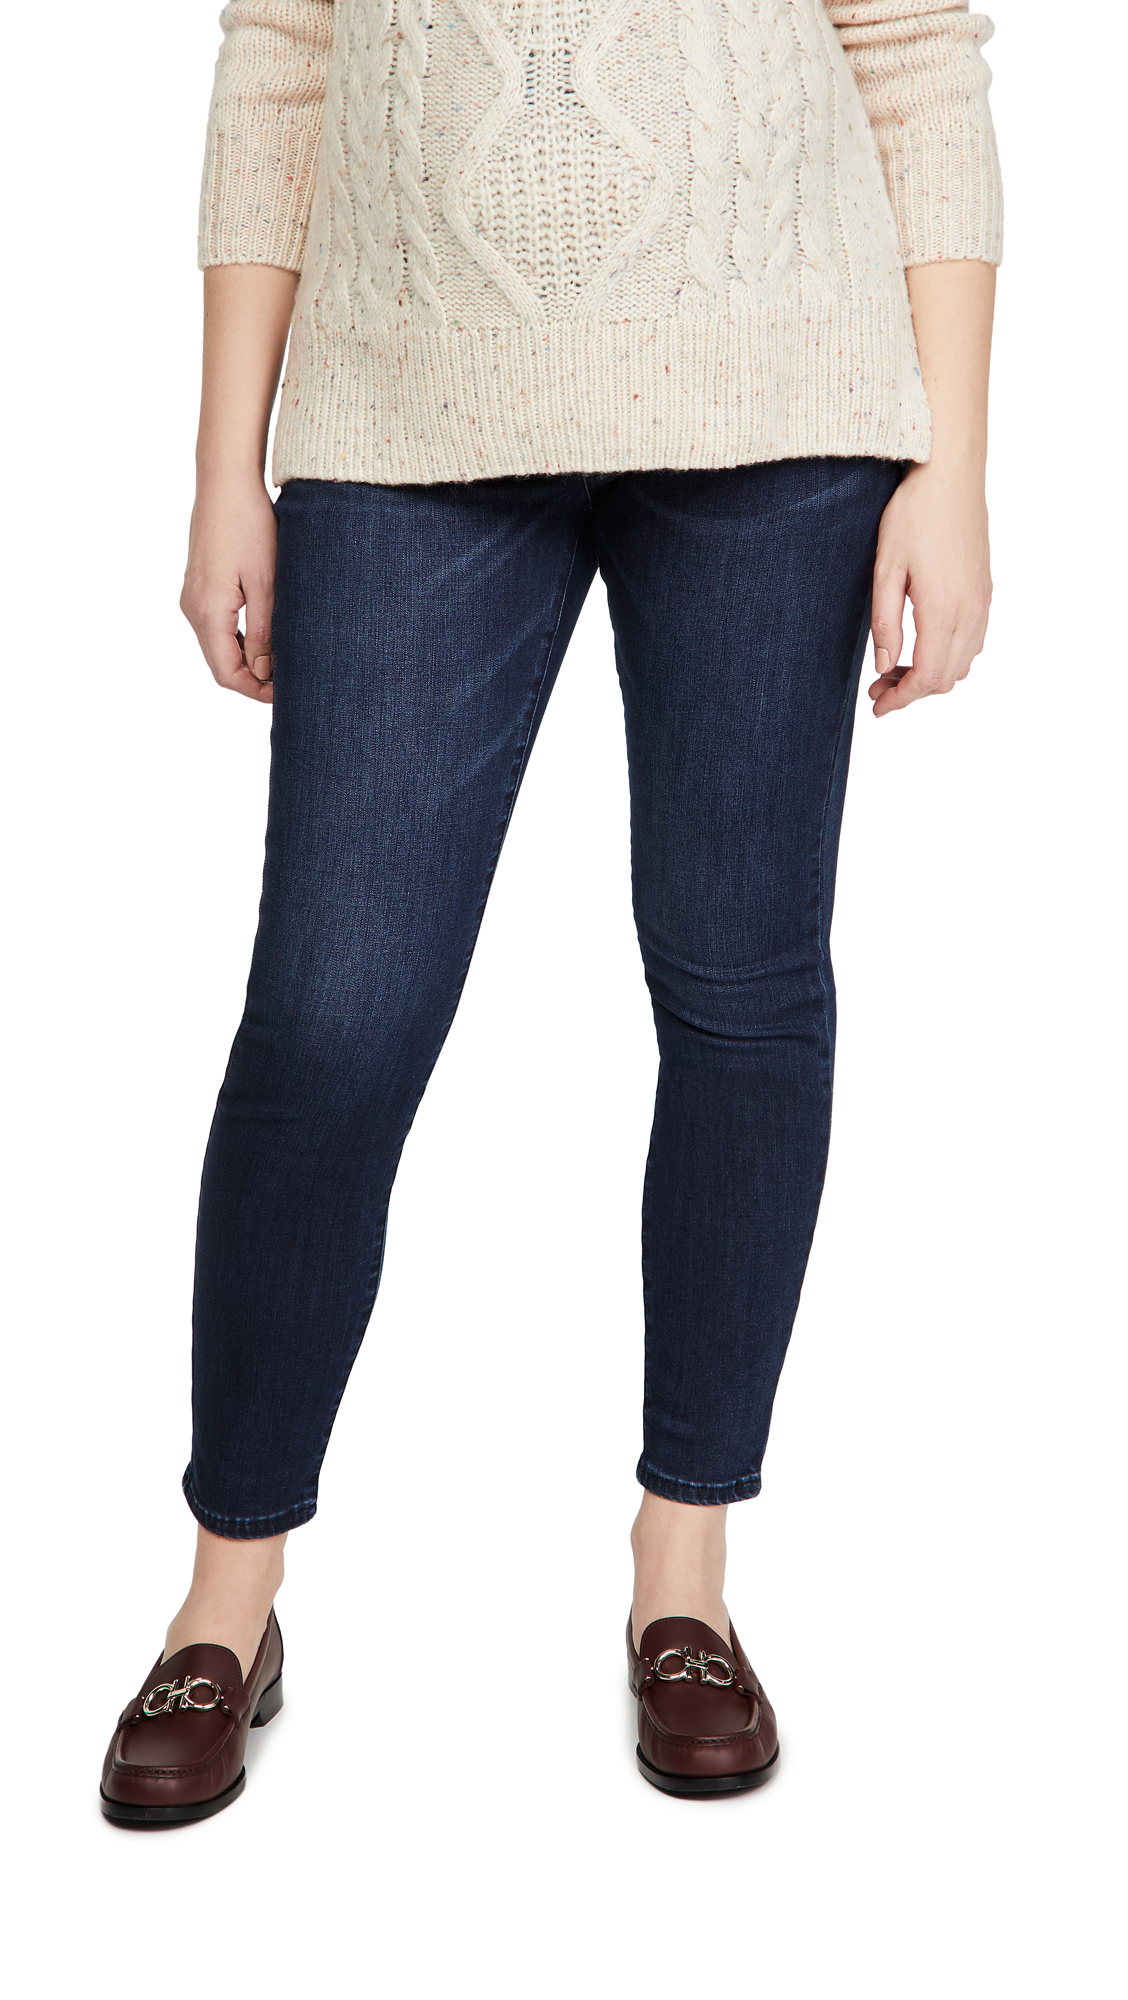 Ingrid & Isabel Maternity Skinny Jeans with Crossover Panel